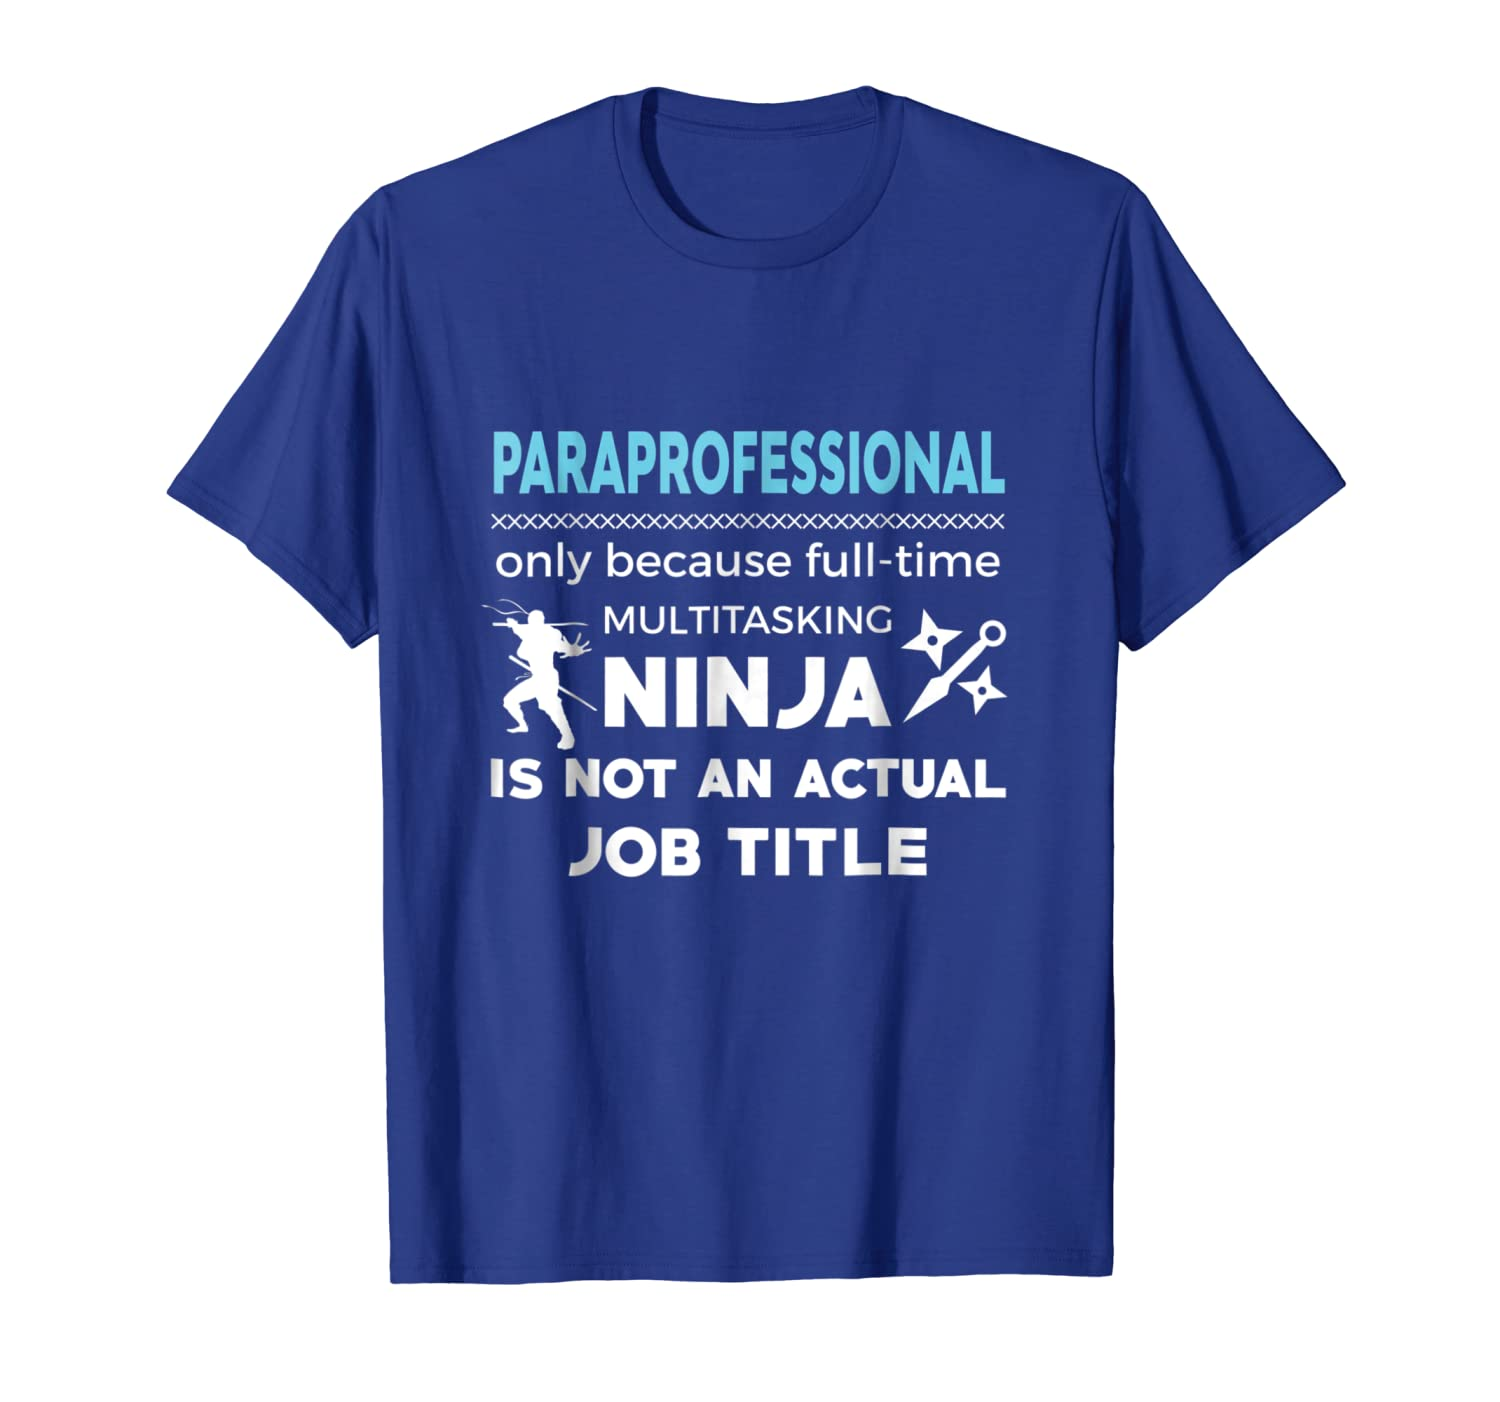 Amazon.com: Paraprofessional Because Ninja Not Job Funny T ...